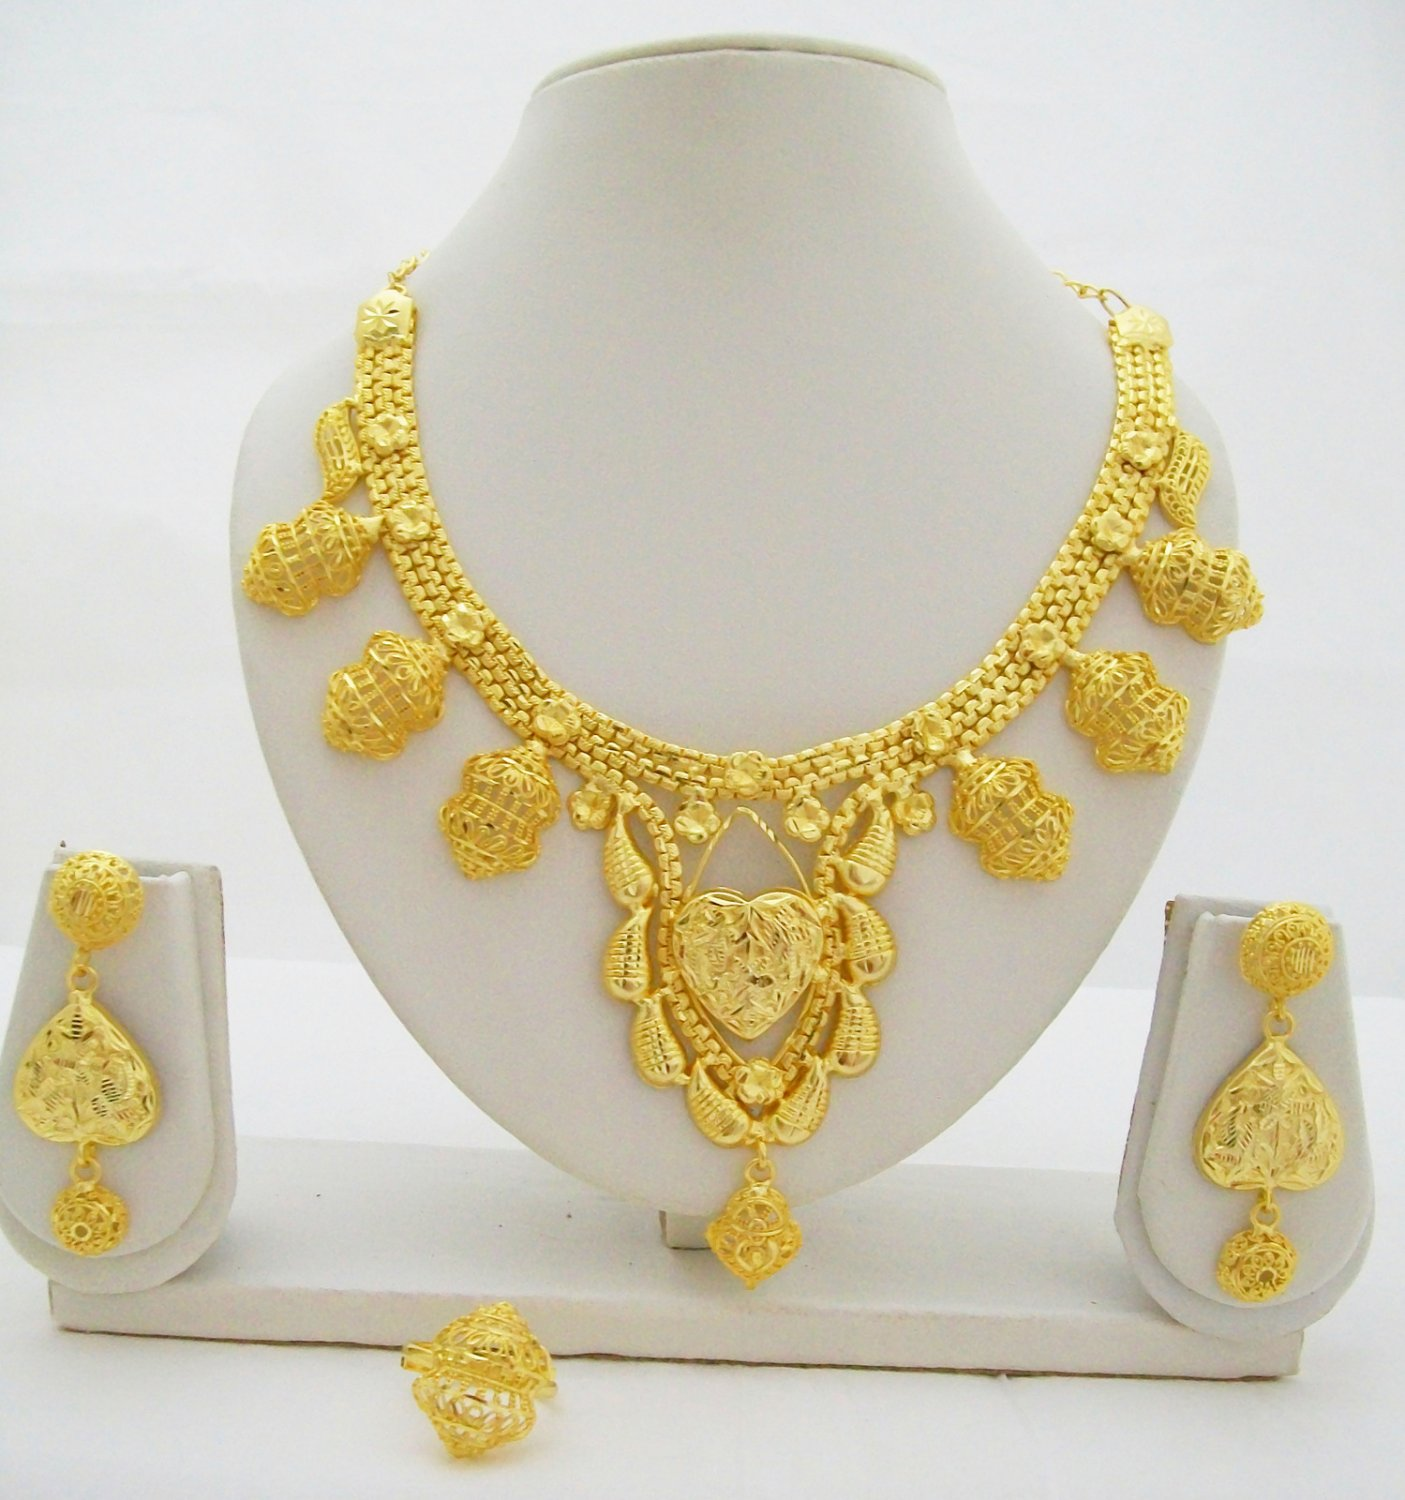 Retro Filigree Gold Plated Necklace Earring Ring Jewelry Set